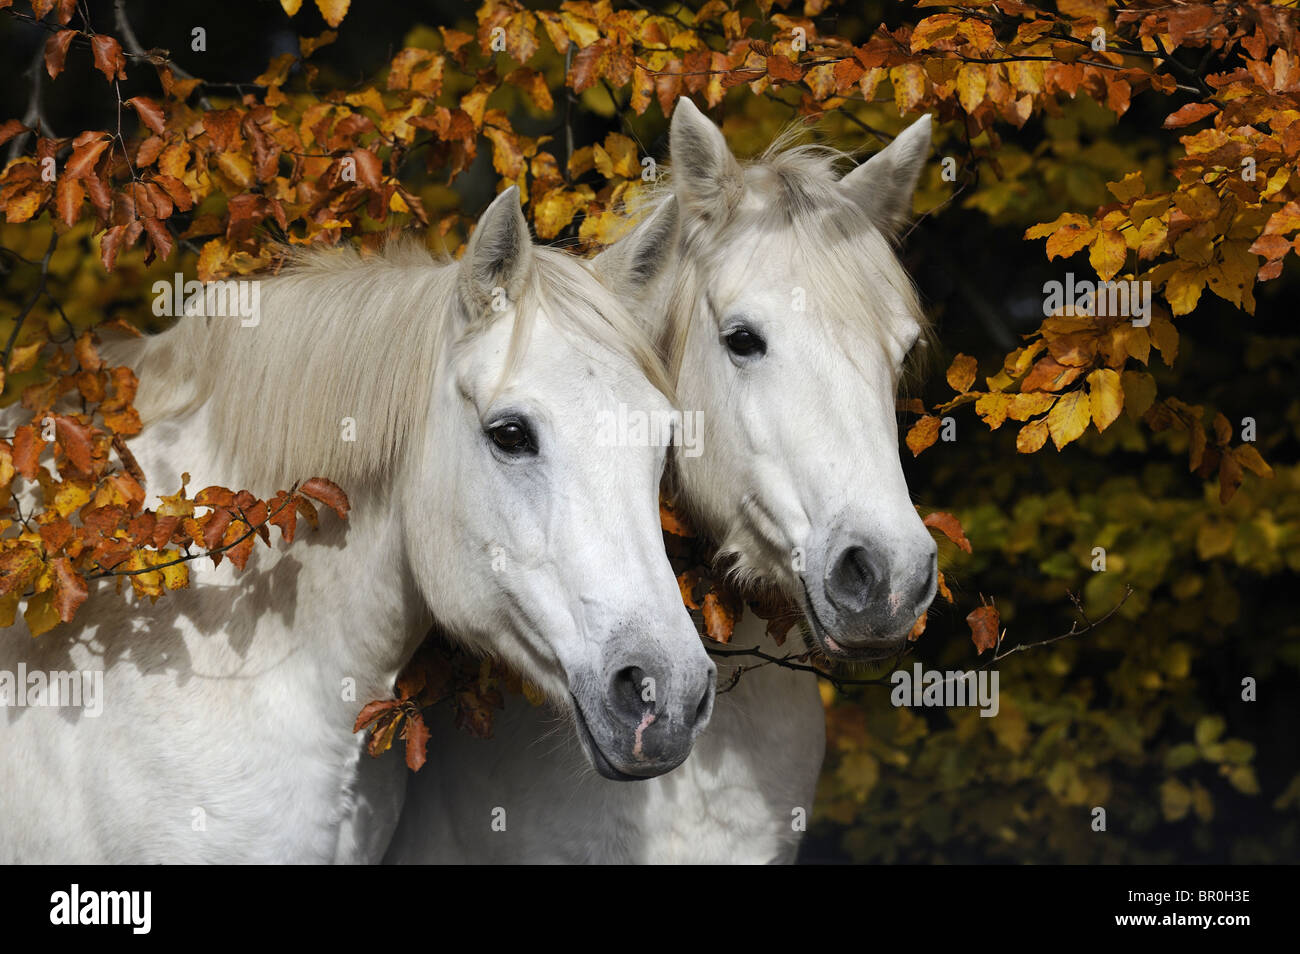 Connemara Pony (Equus ferus caballus). Portrait of two gray mares in autumn. - Stock Image